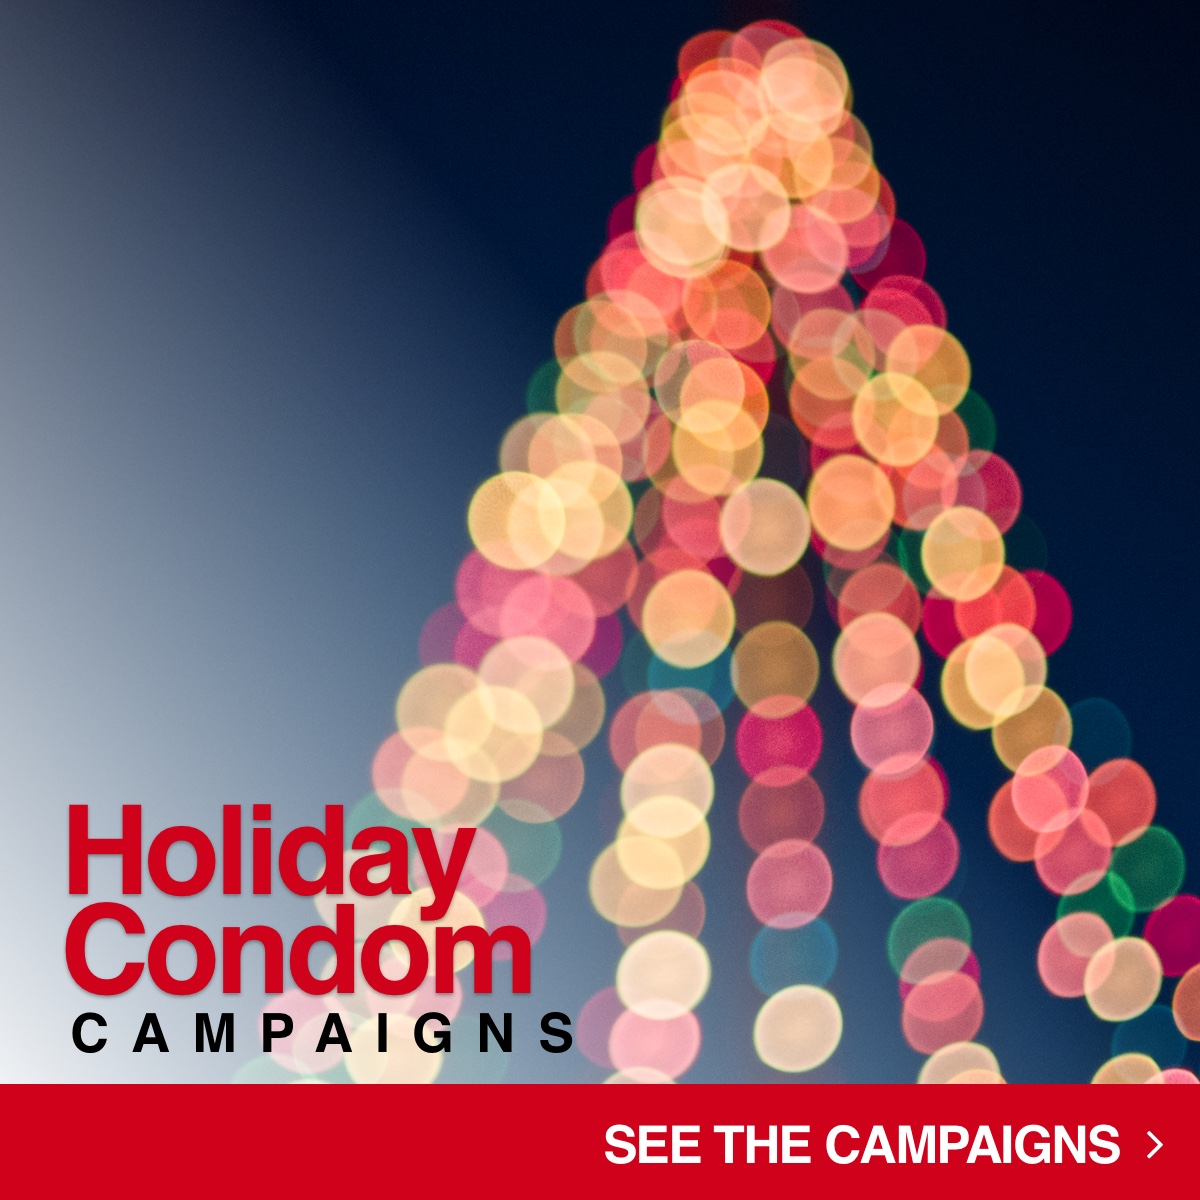 Holiday Condoms